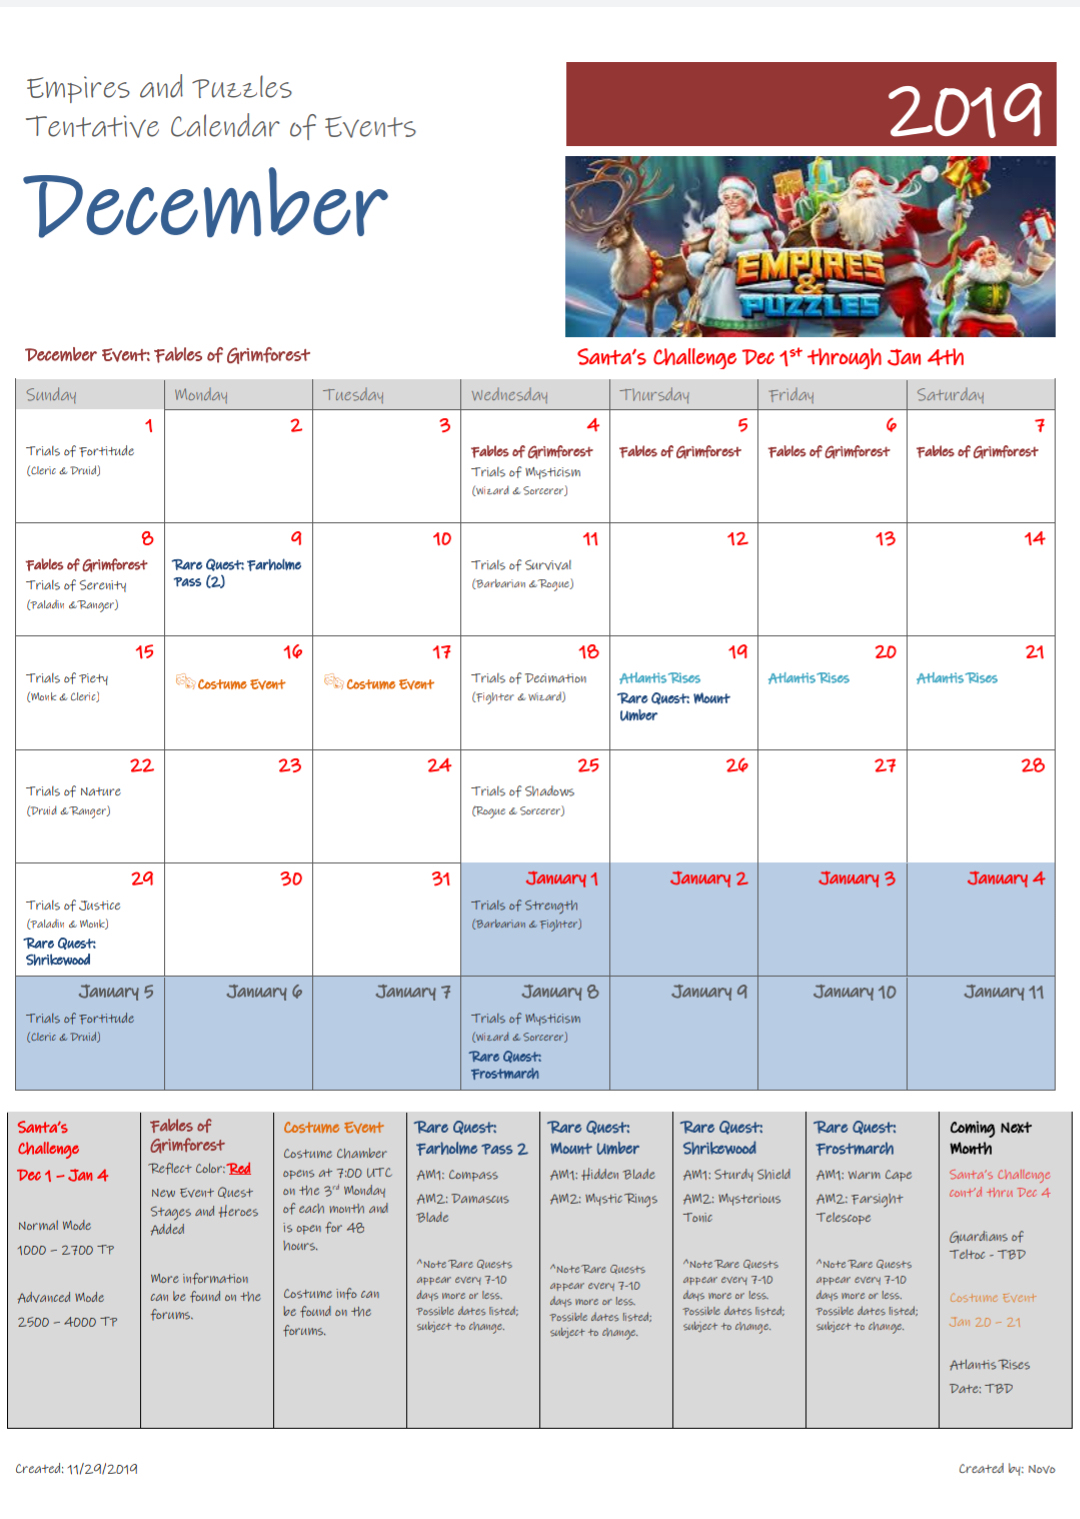 December 2019 Calendar Of Events : Empiresandpuzzles throughout Empires And Puzzles Events Calendar